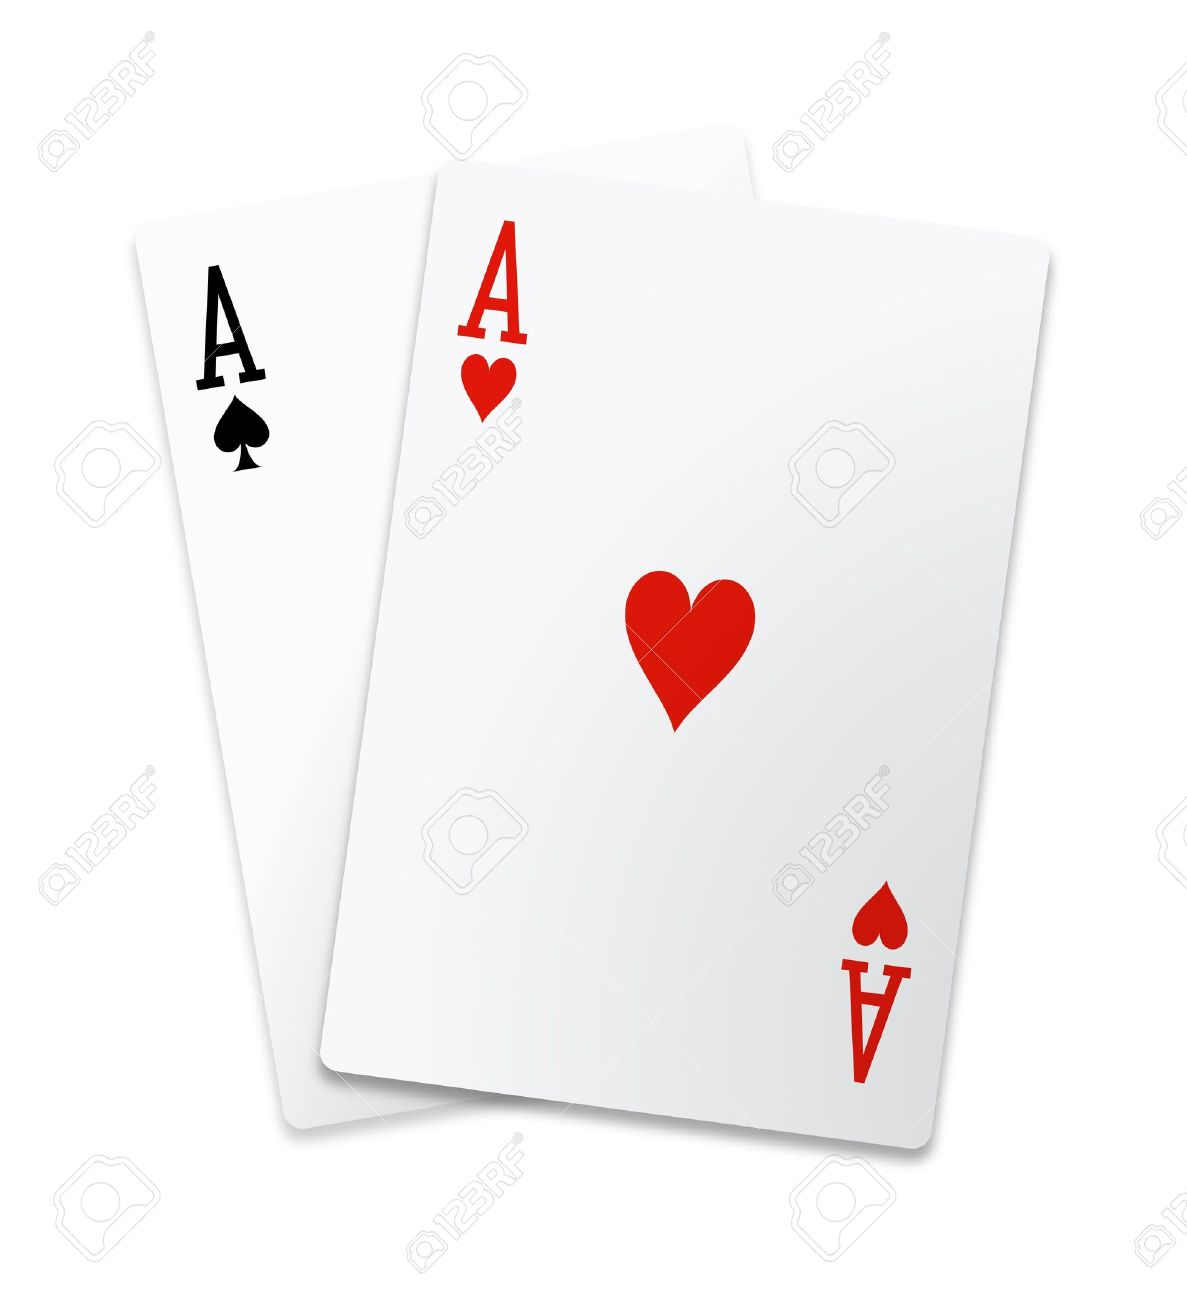 Pair of aces poker downtown vegas hotels casinos